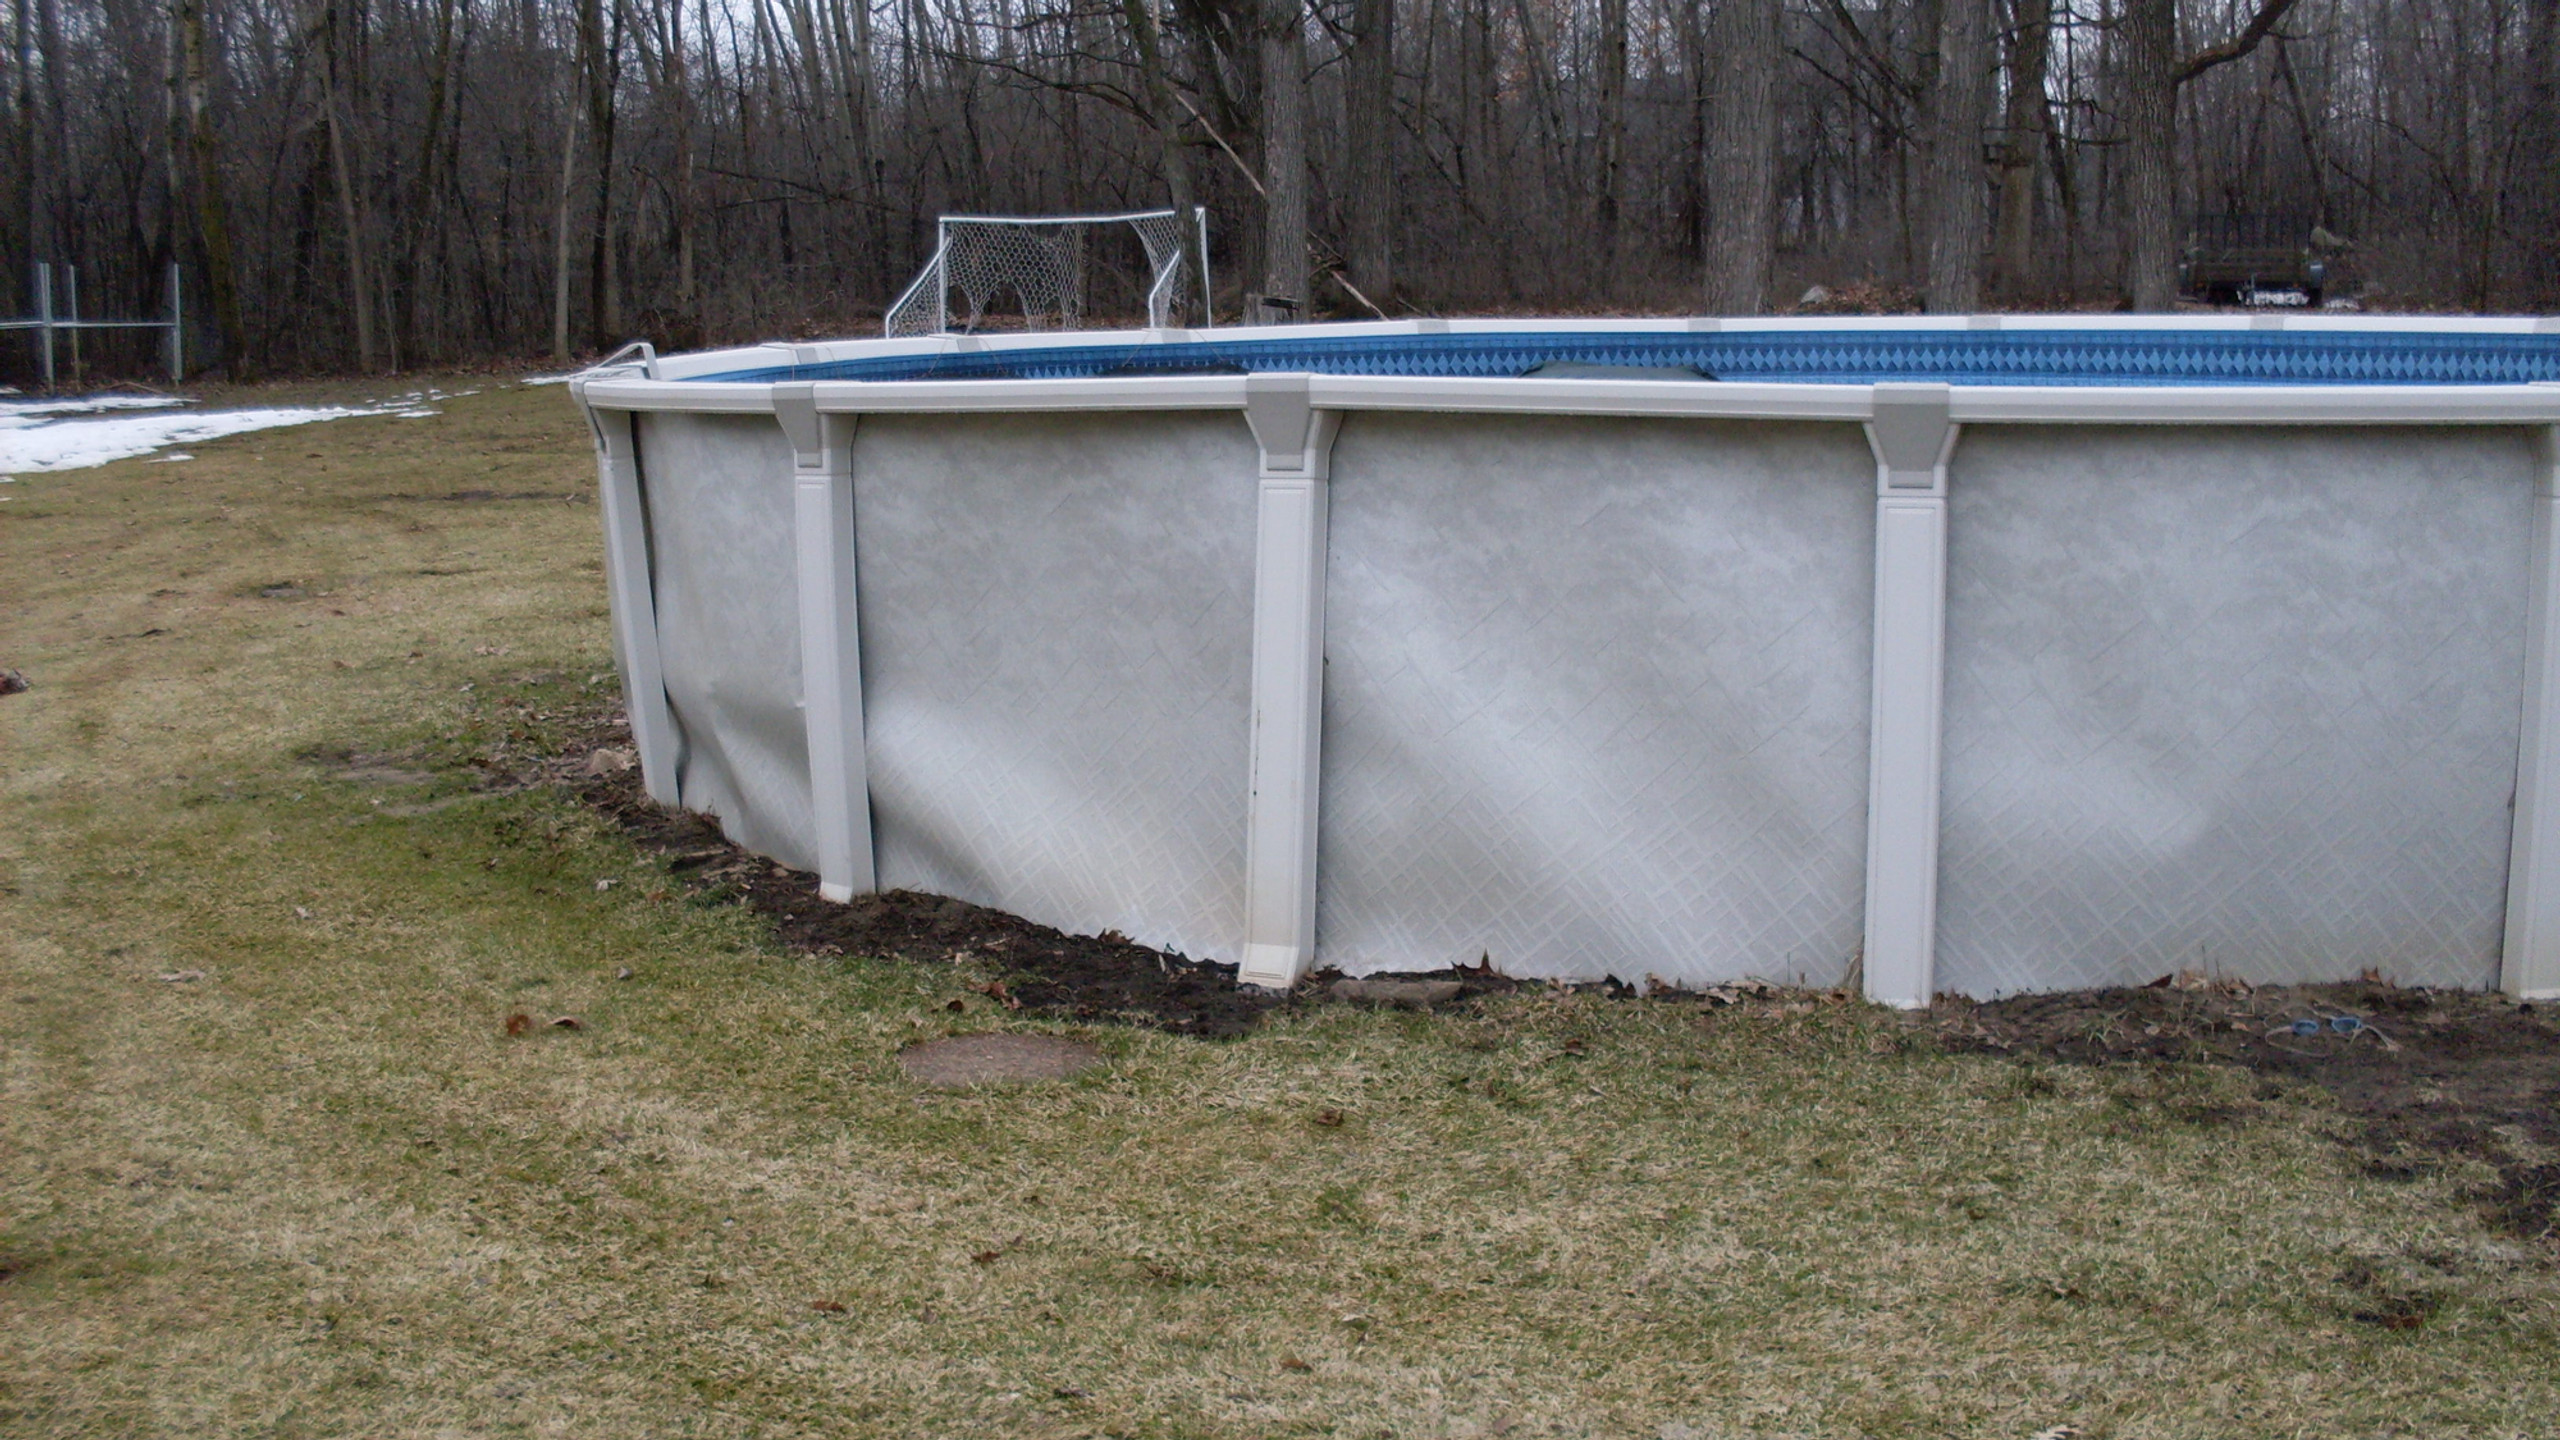 This above Ground Pool is permanently destroyed because the builder chose to use patio blocks under the uprights.